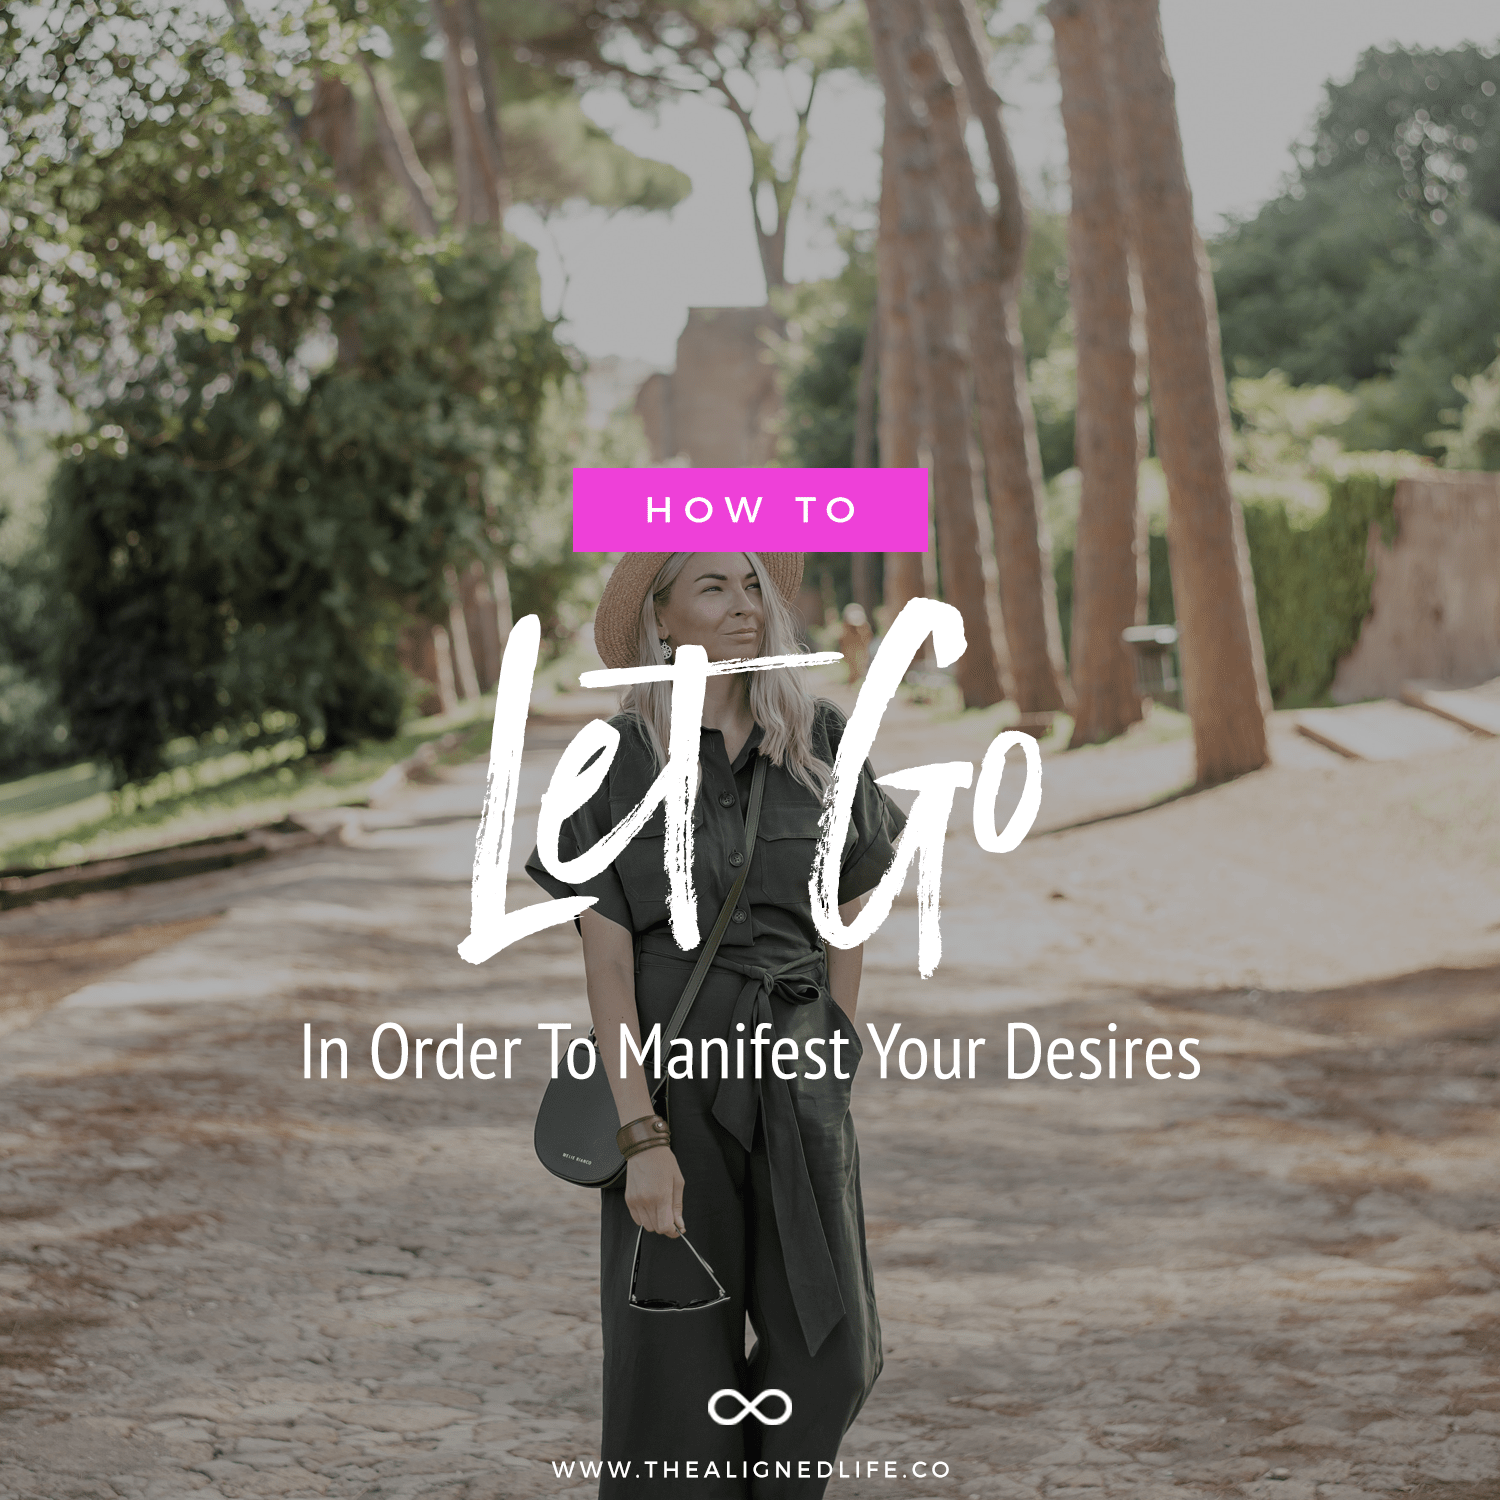 How To Let Go In Order To Manifest